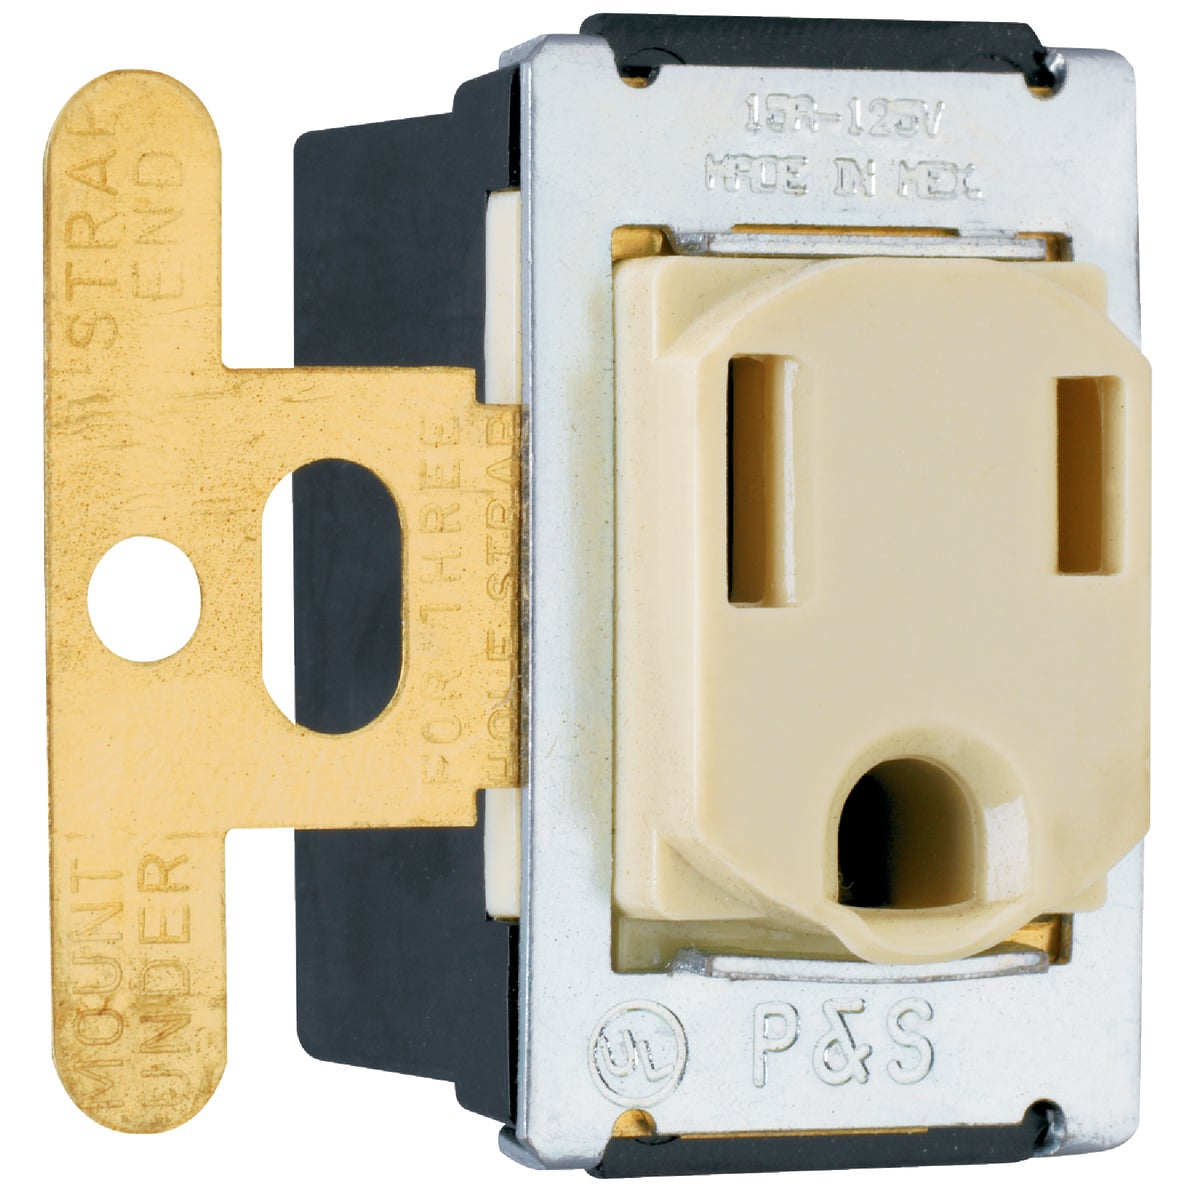 3-WIRE IV FLUSH OUTLET - 1432 by Pass Seymour Legrand